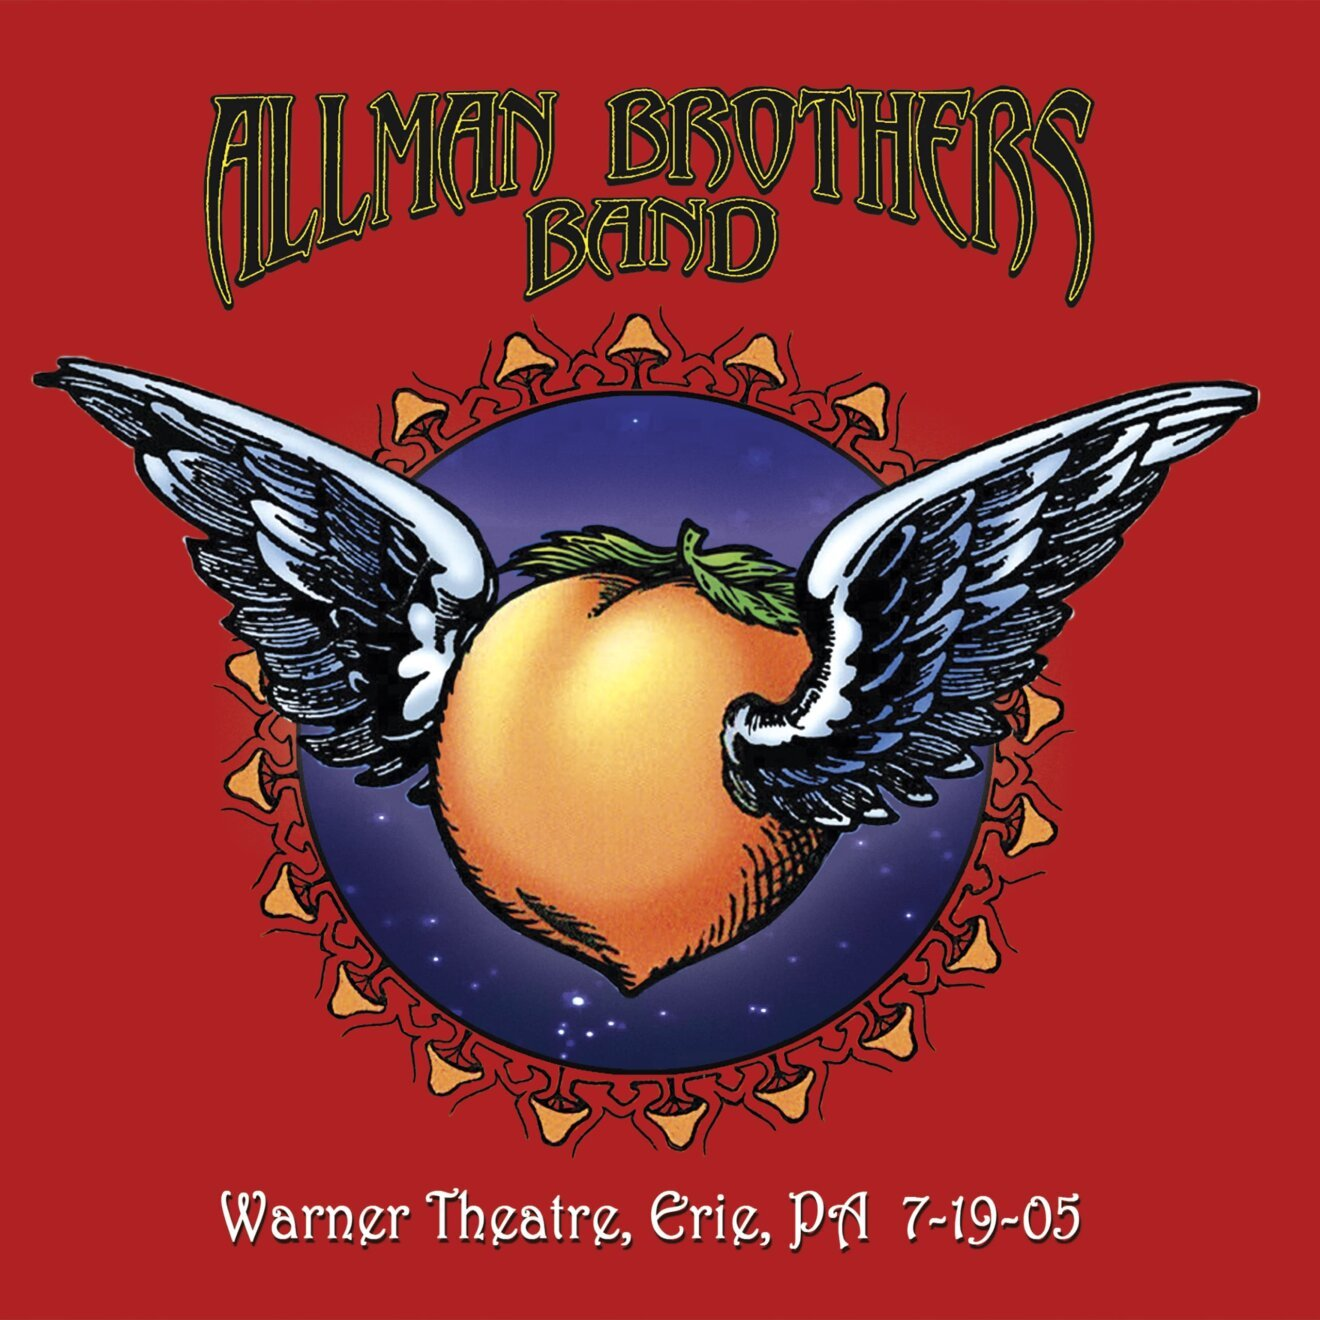 Allman Brothers Band - Warner Theatre, Erie, PA 7-19-05